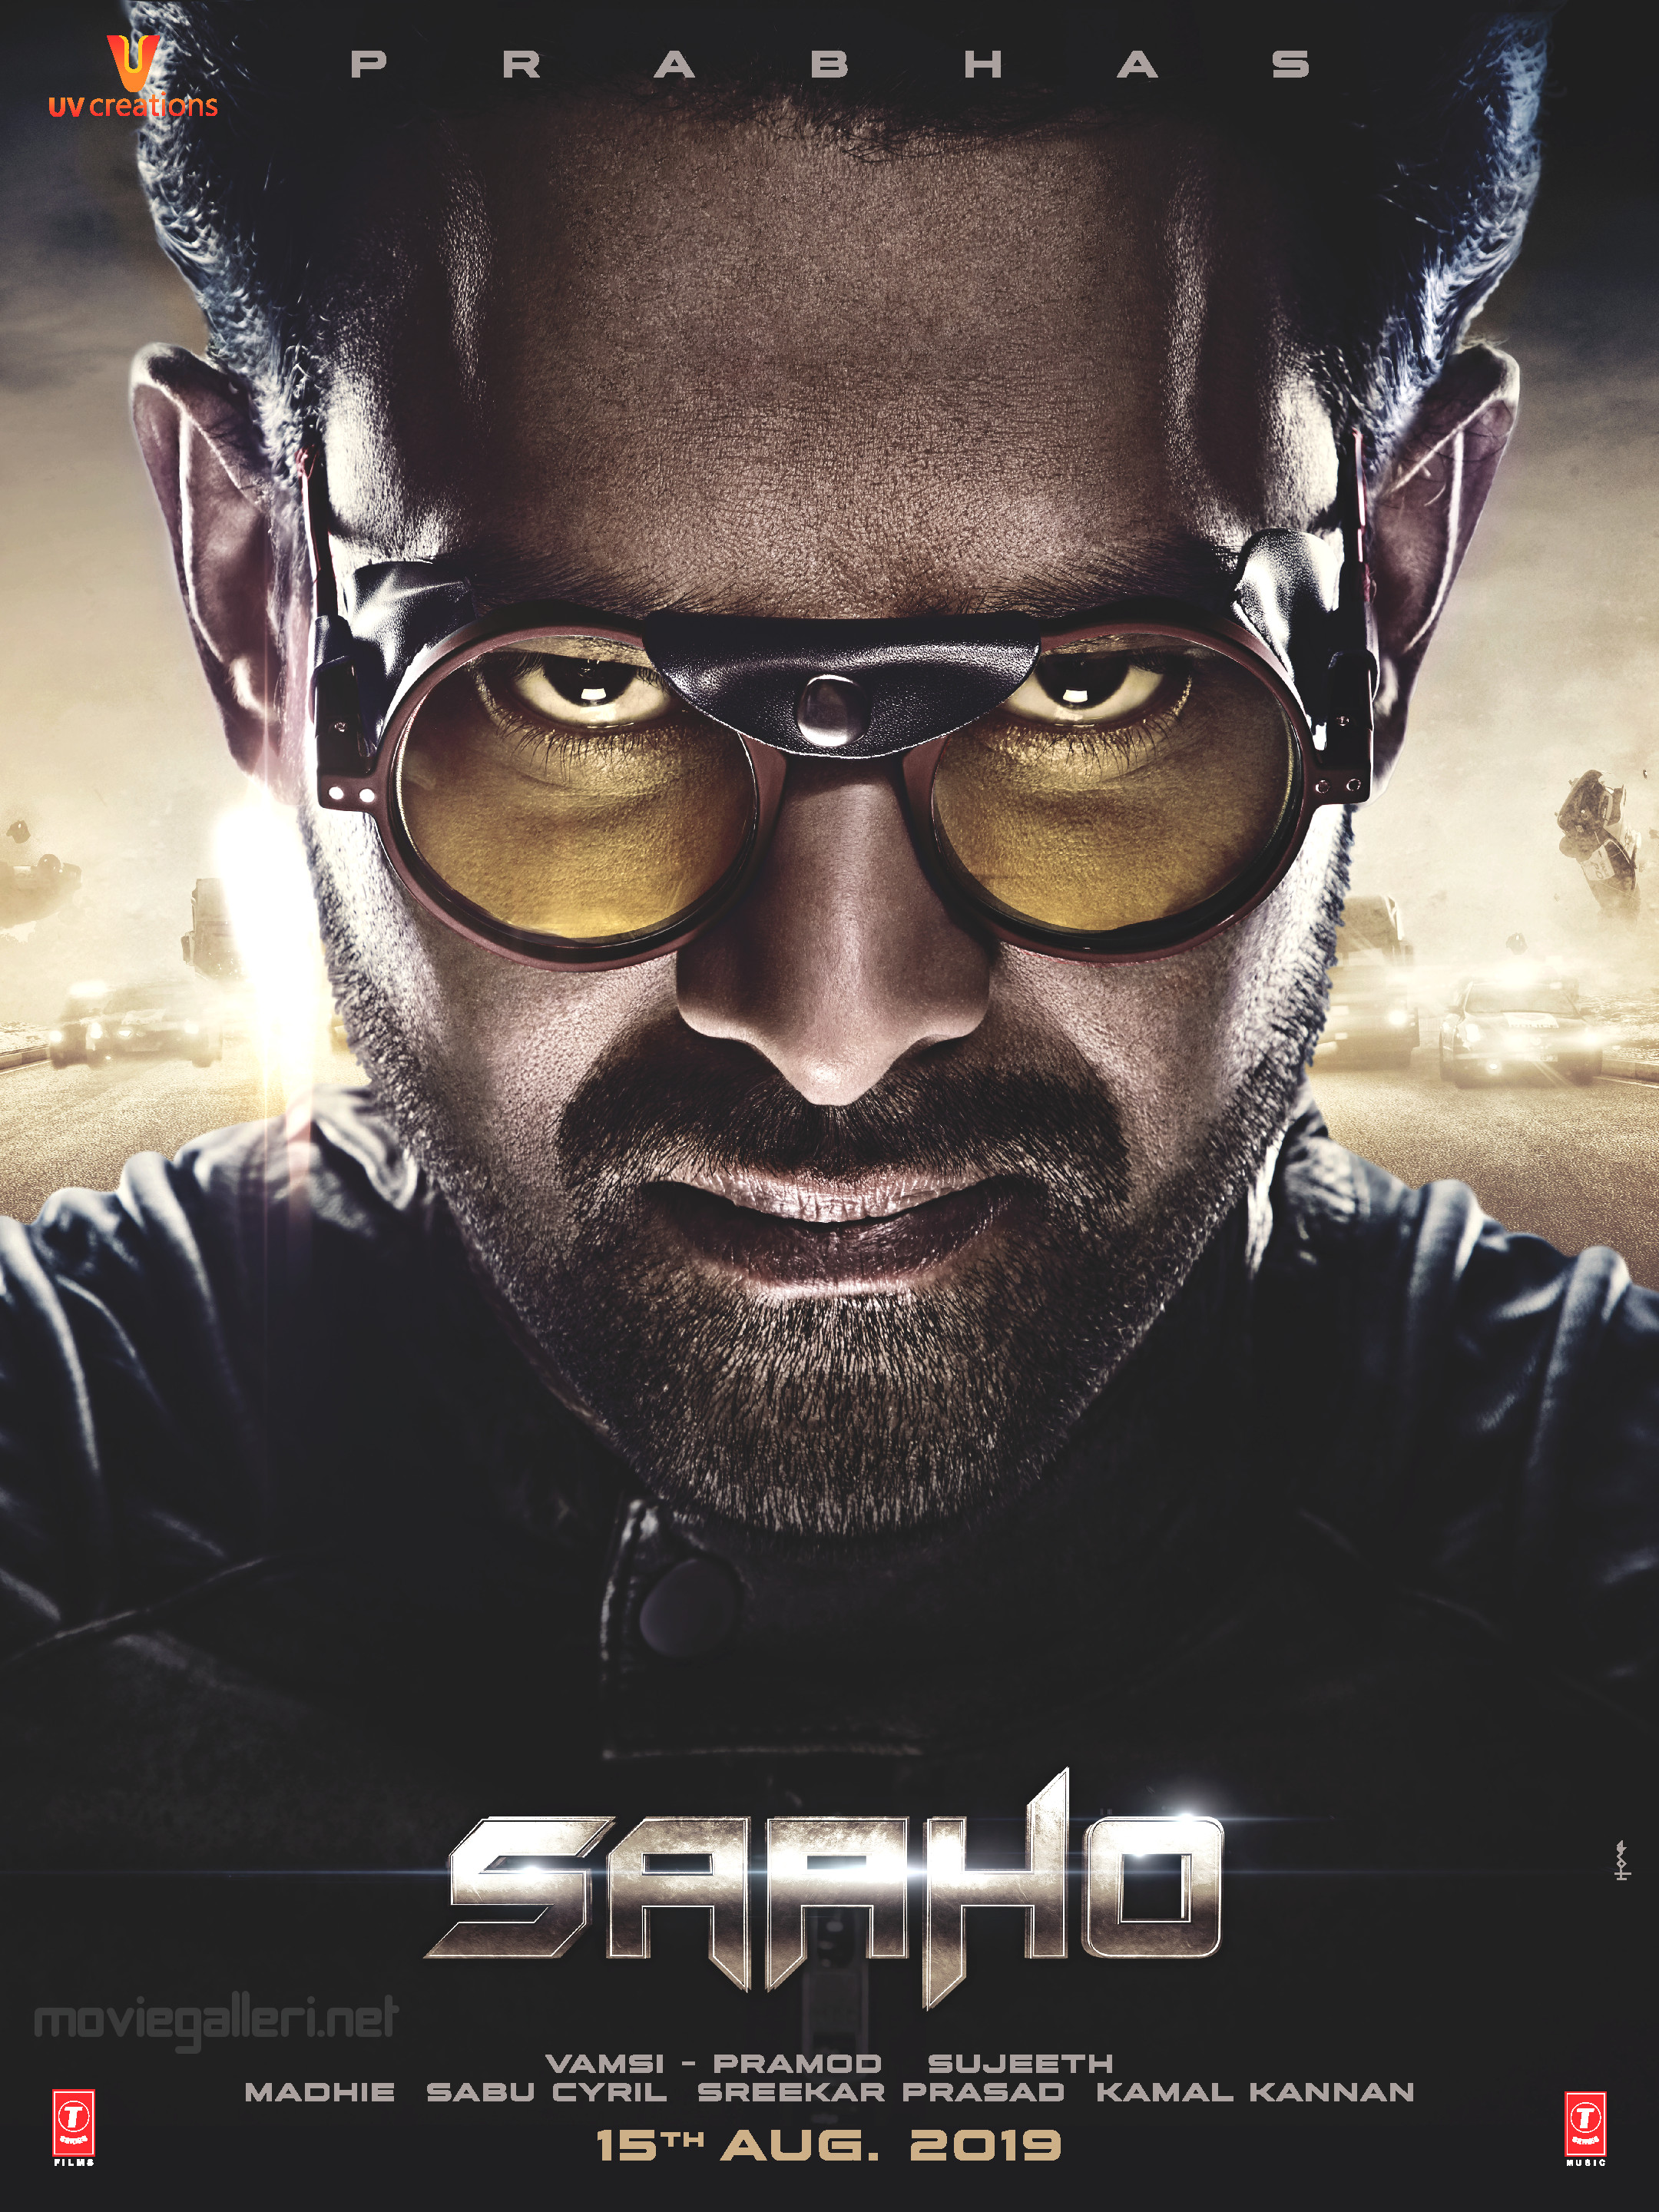 Actor Prabhas Saaho Movie Release Date on 15th Aug Poster HD